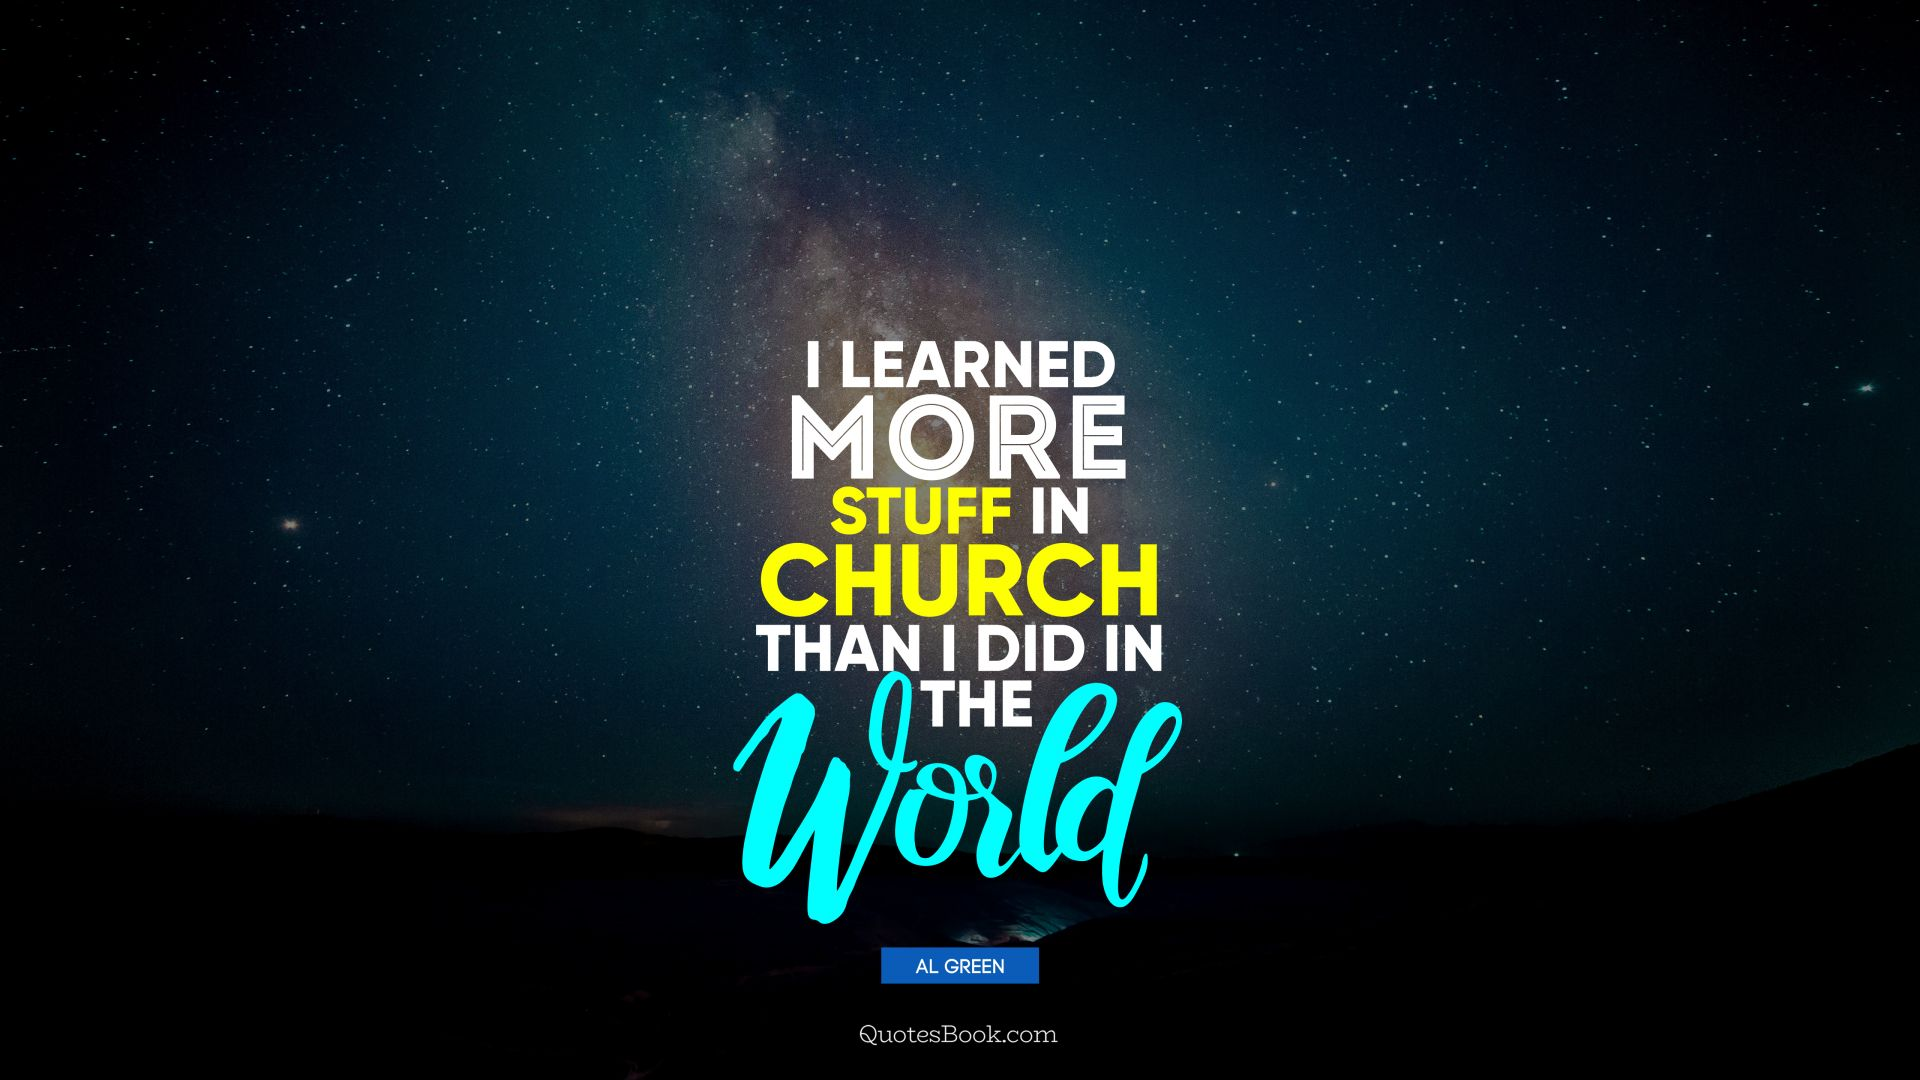 I learned more stuff in church than I did in the world. - Quote by Al Green